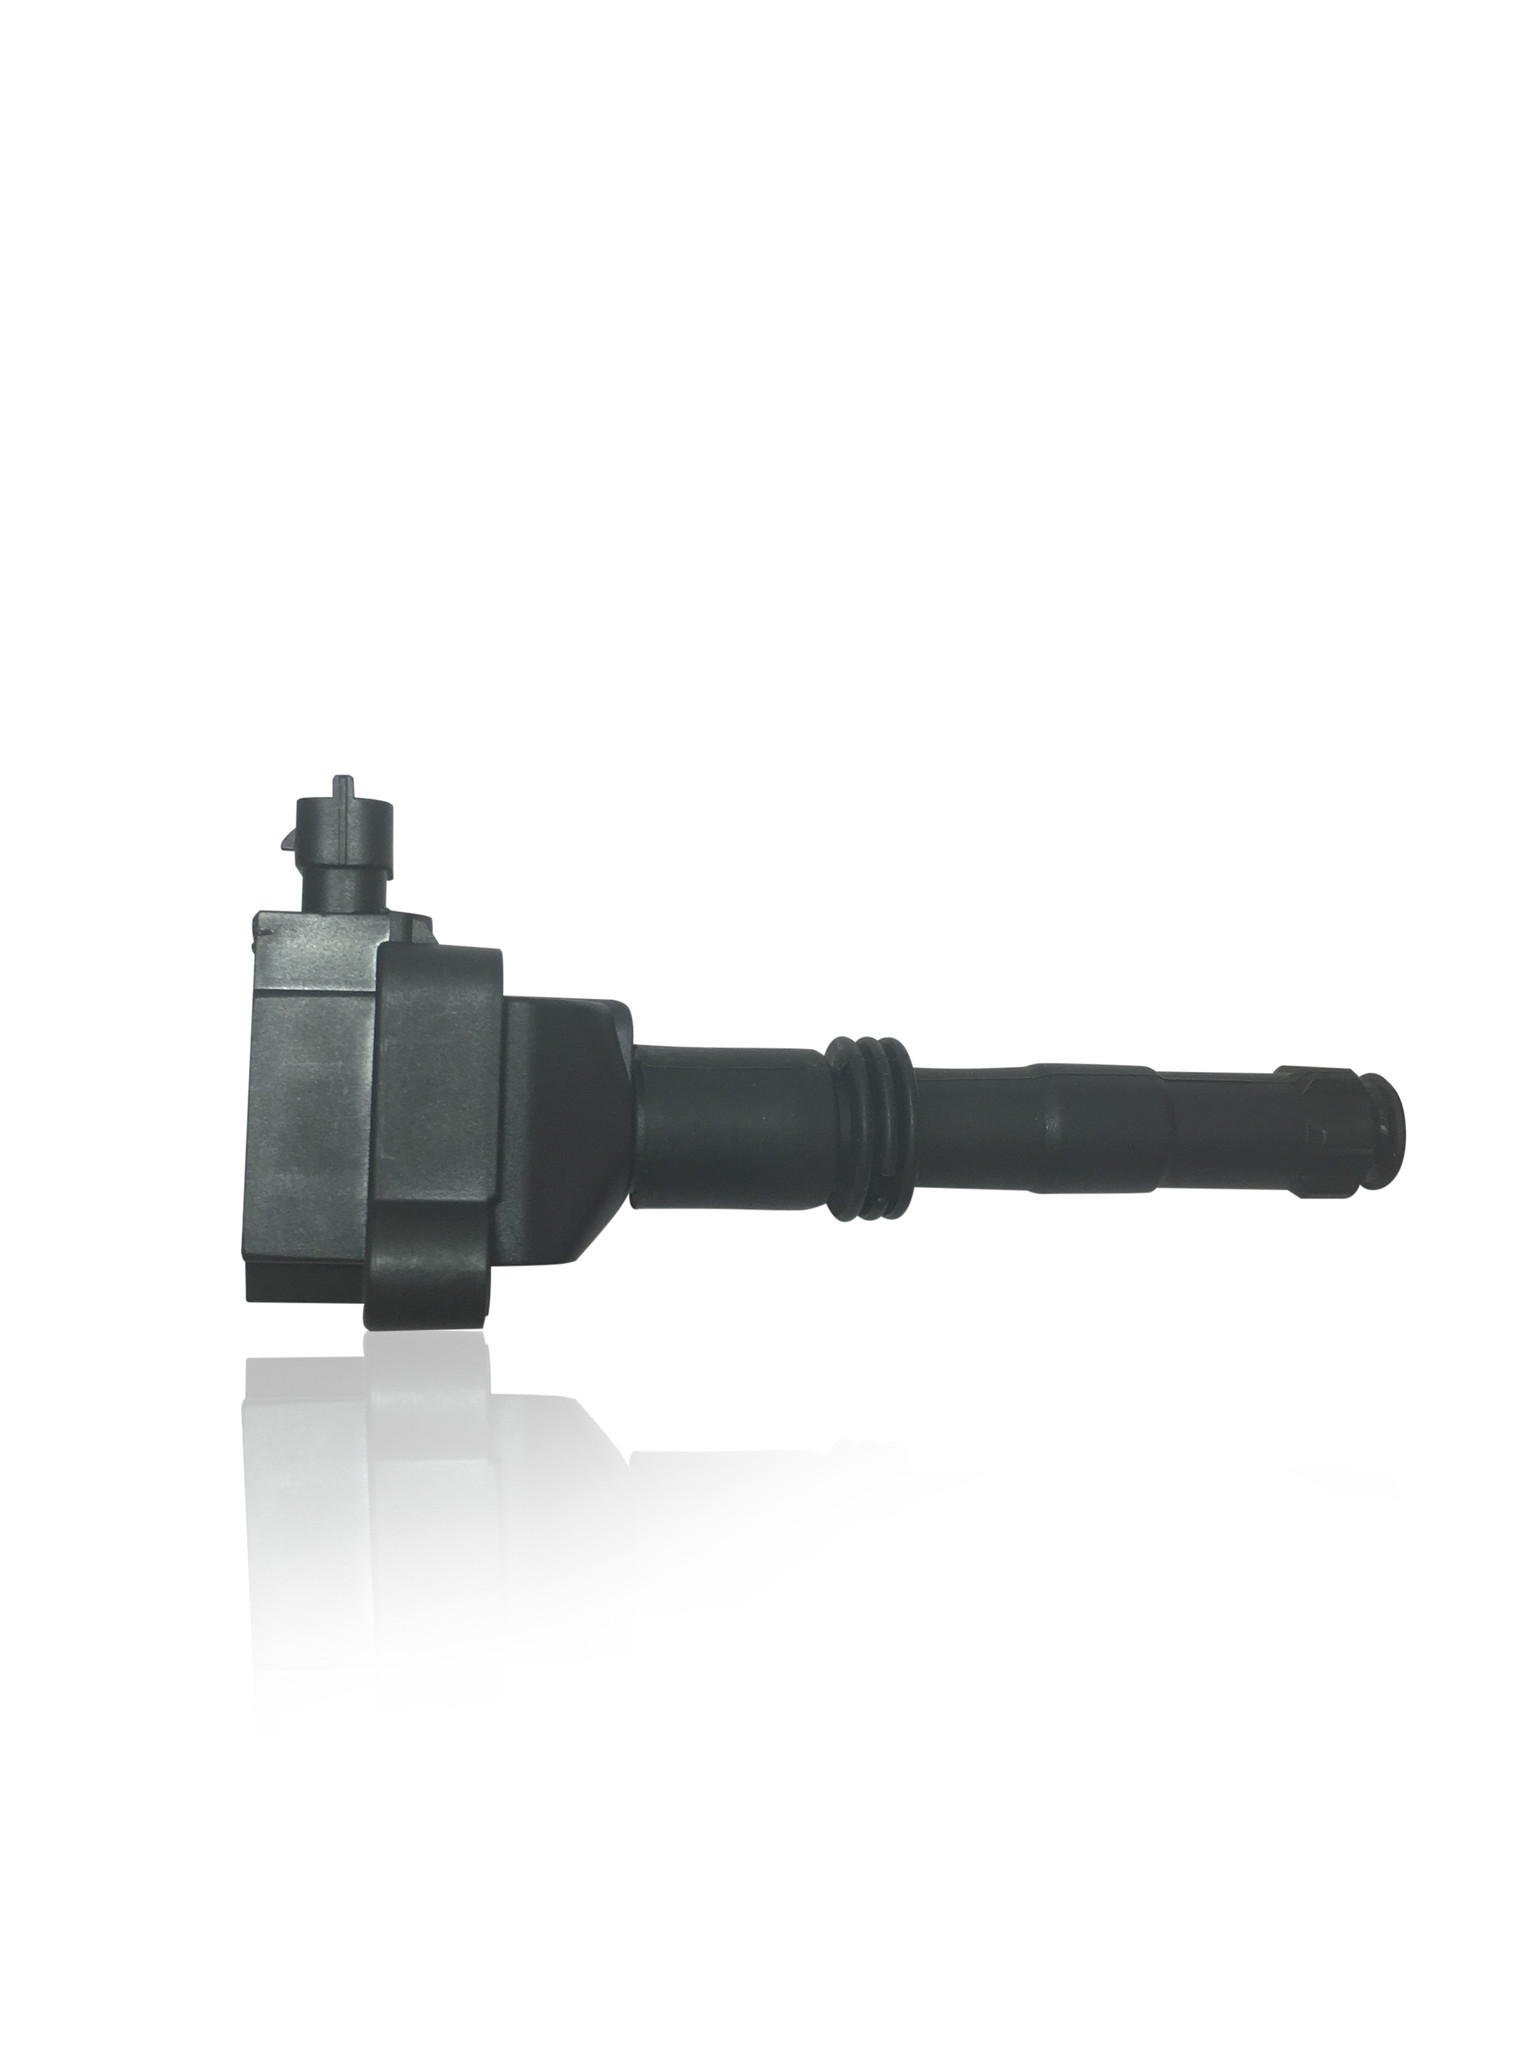 Ignition Coil Pack - Porsche #99760210402 Image